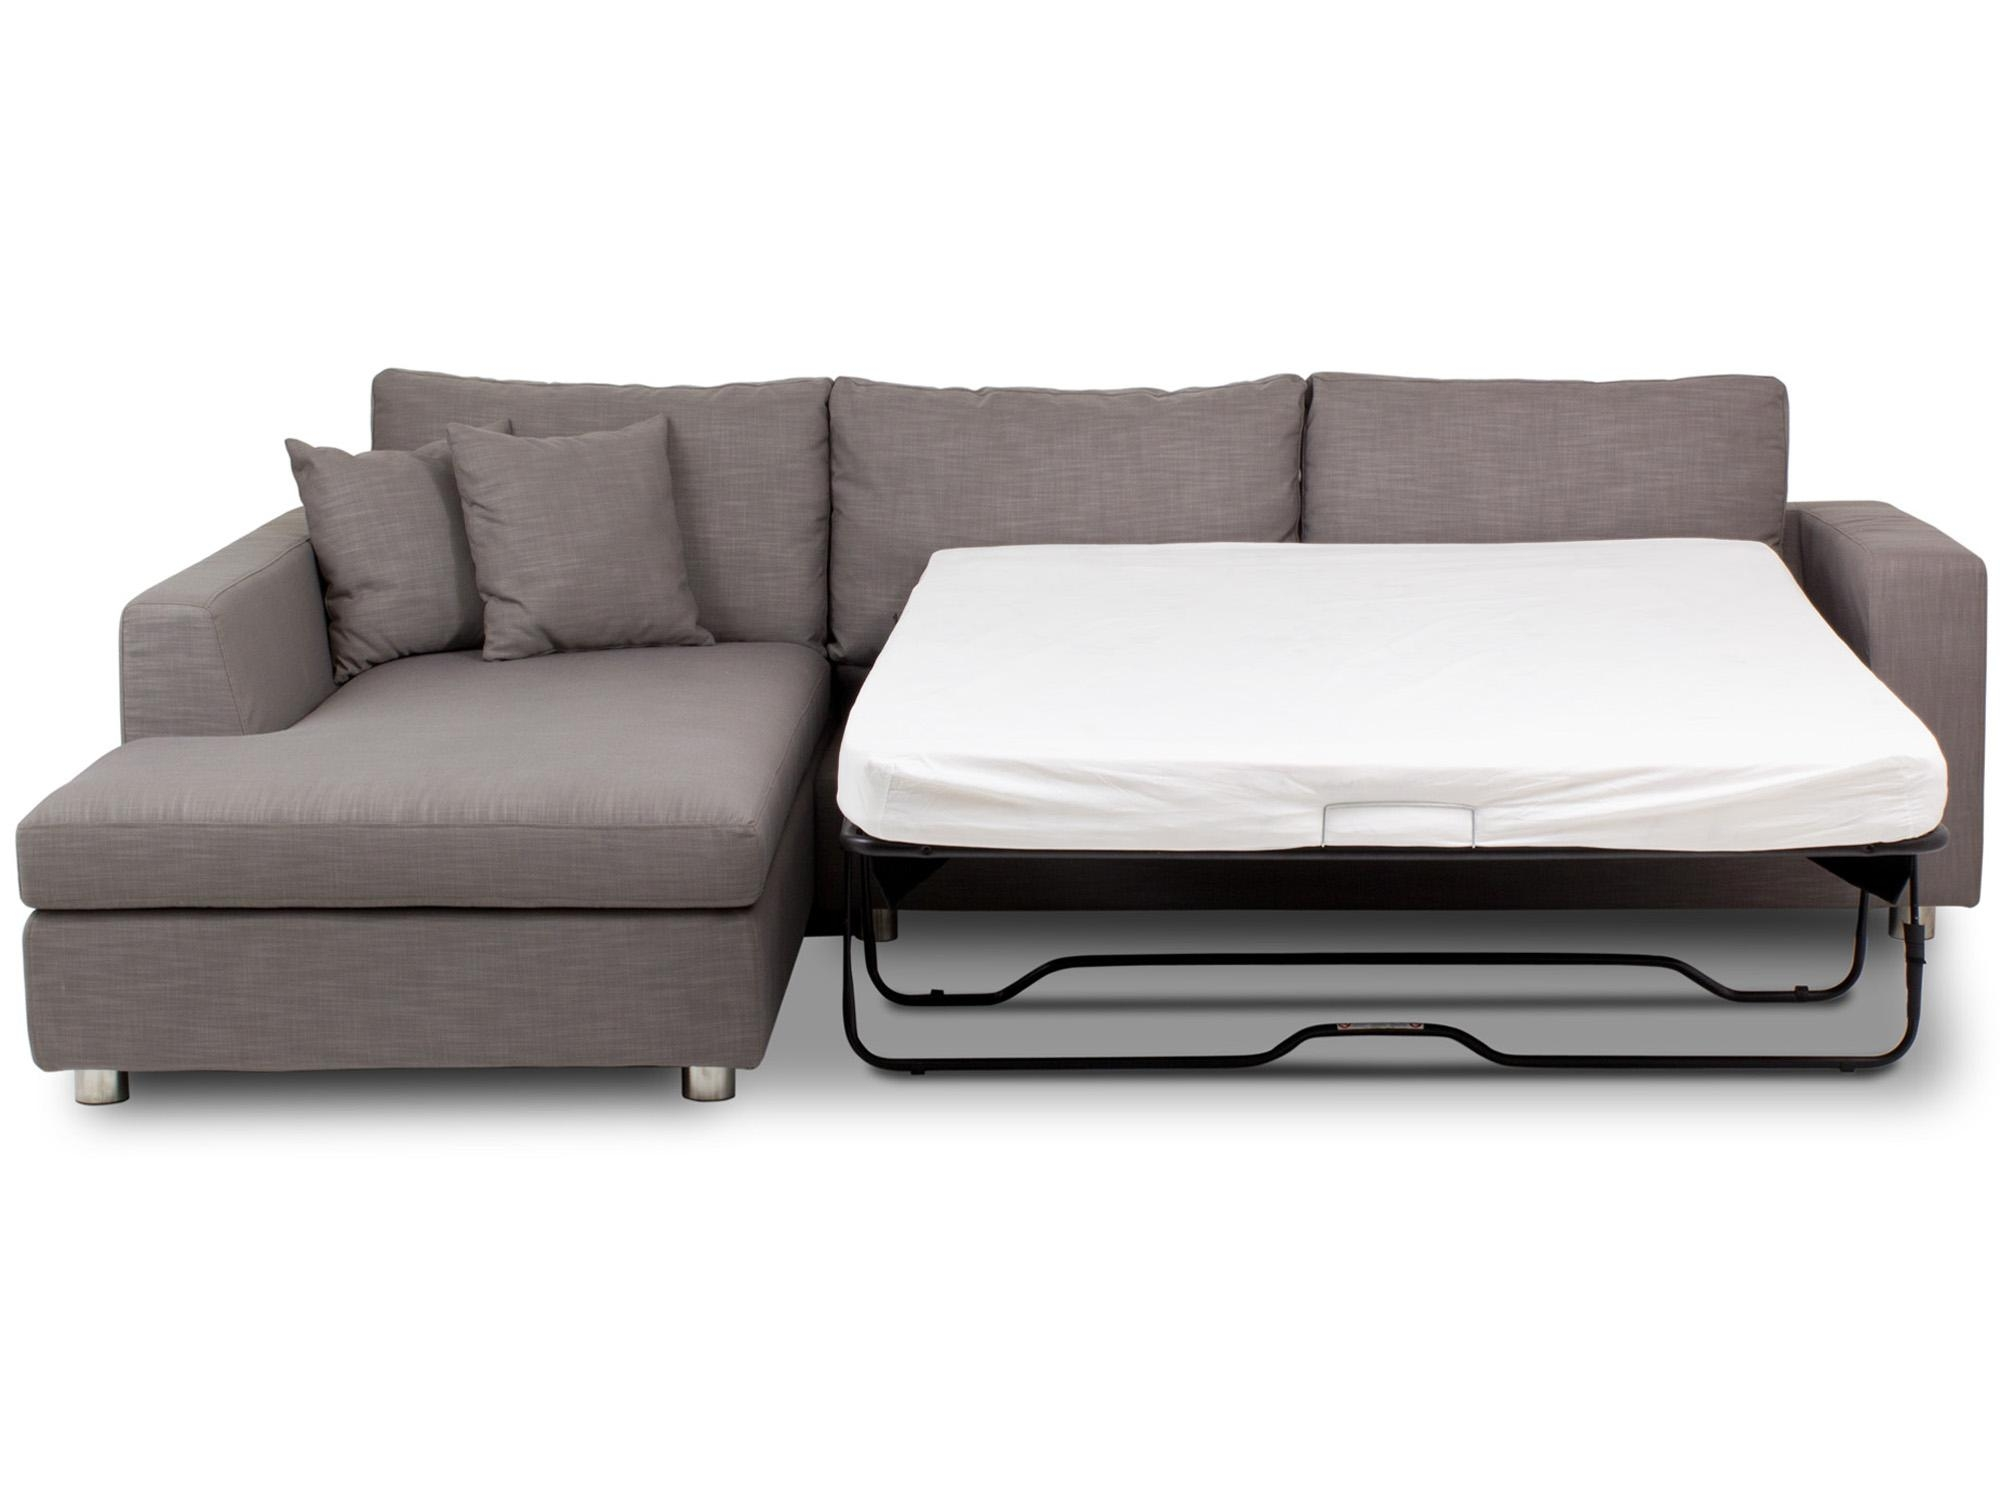 Mondo Storage – Corner Sofa Bed | Loungelovers For Chaise Longue Sofa Beds (Image 14 of 20)